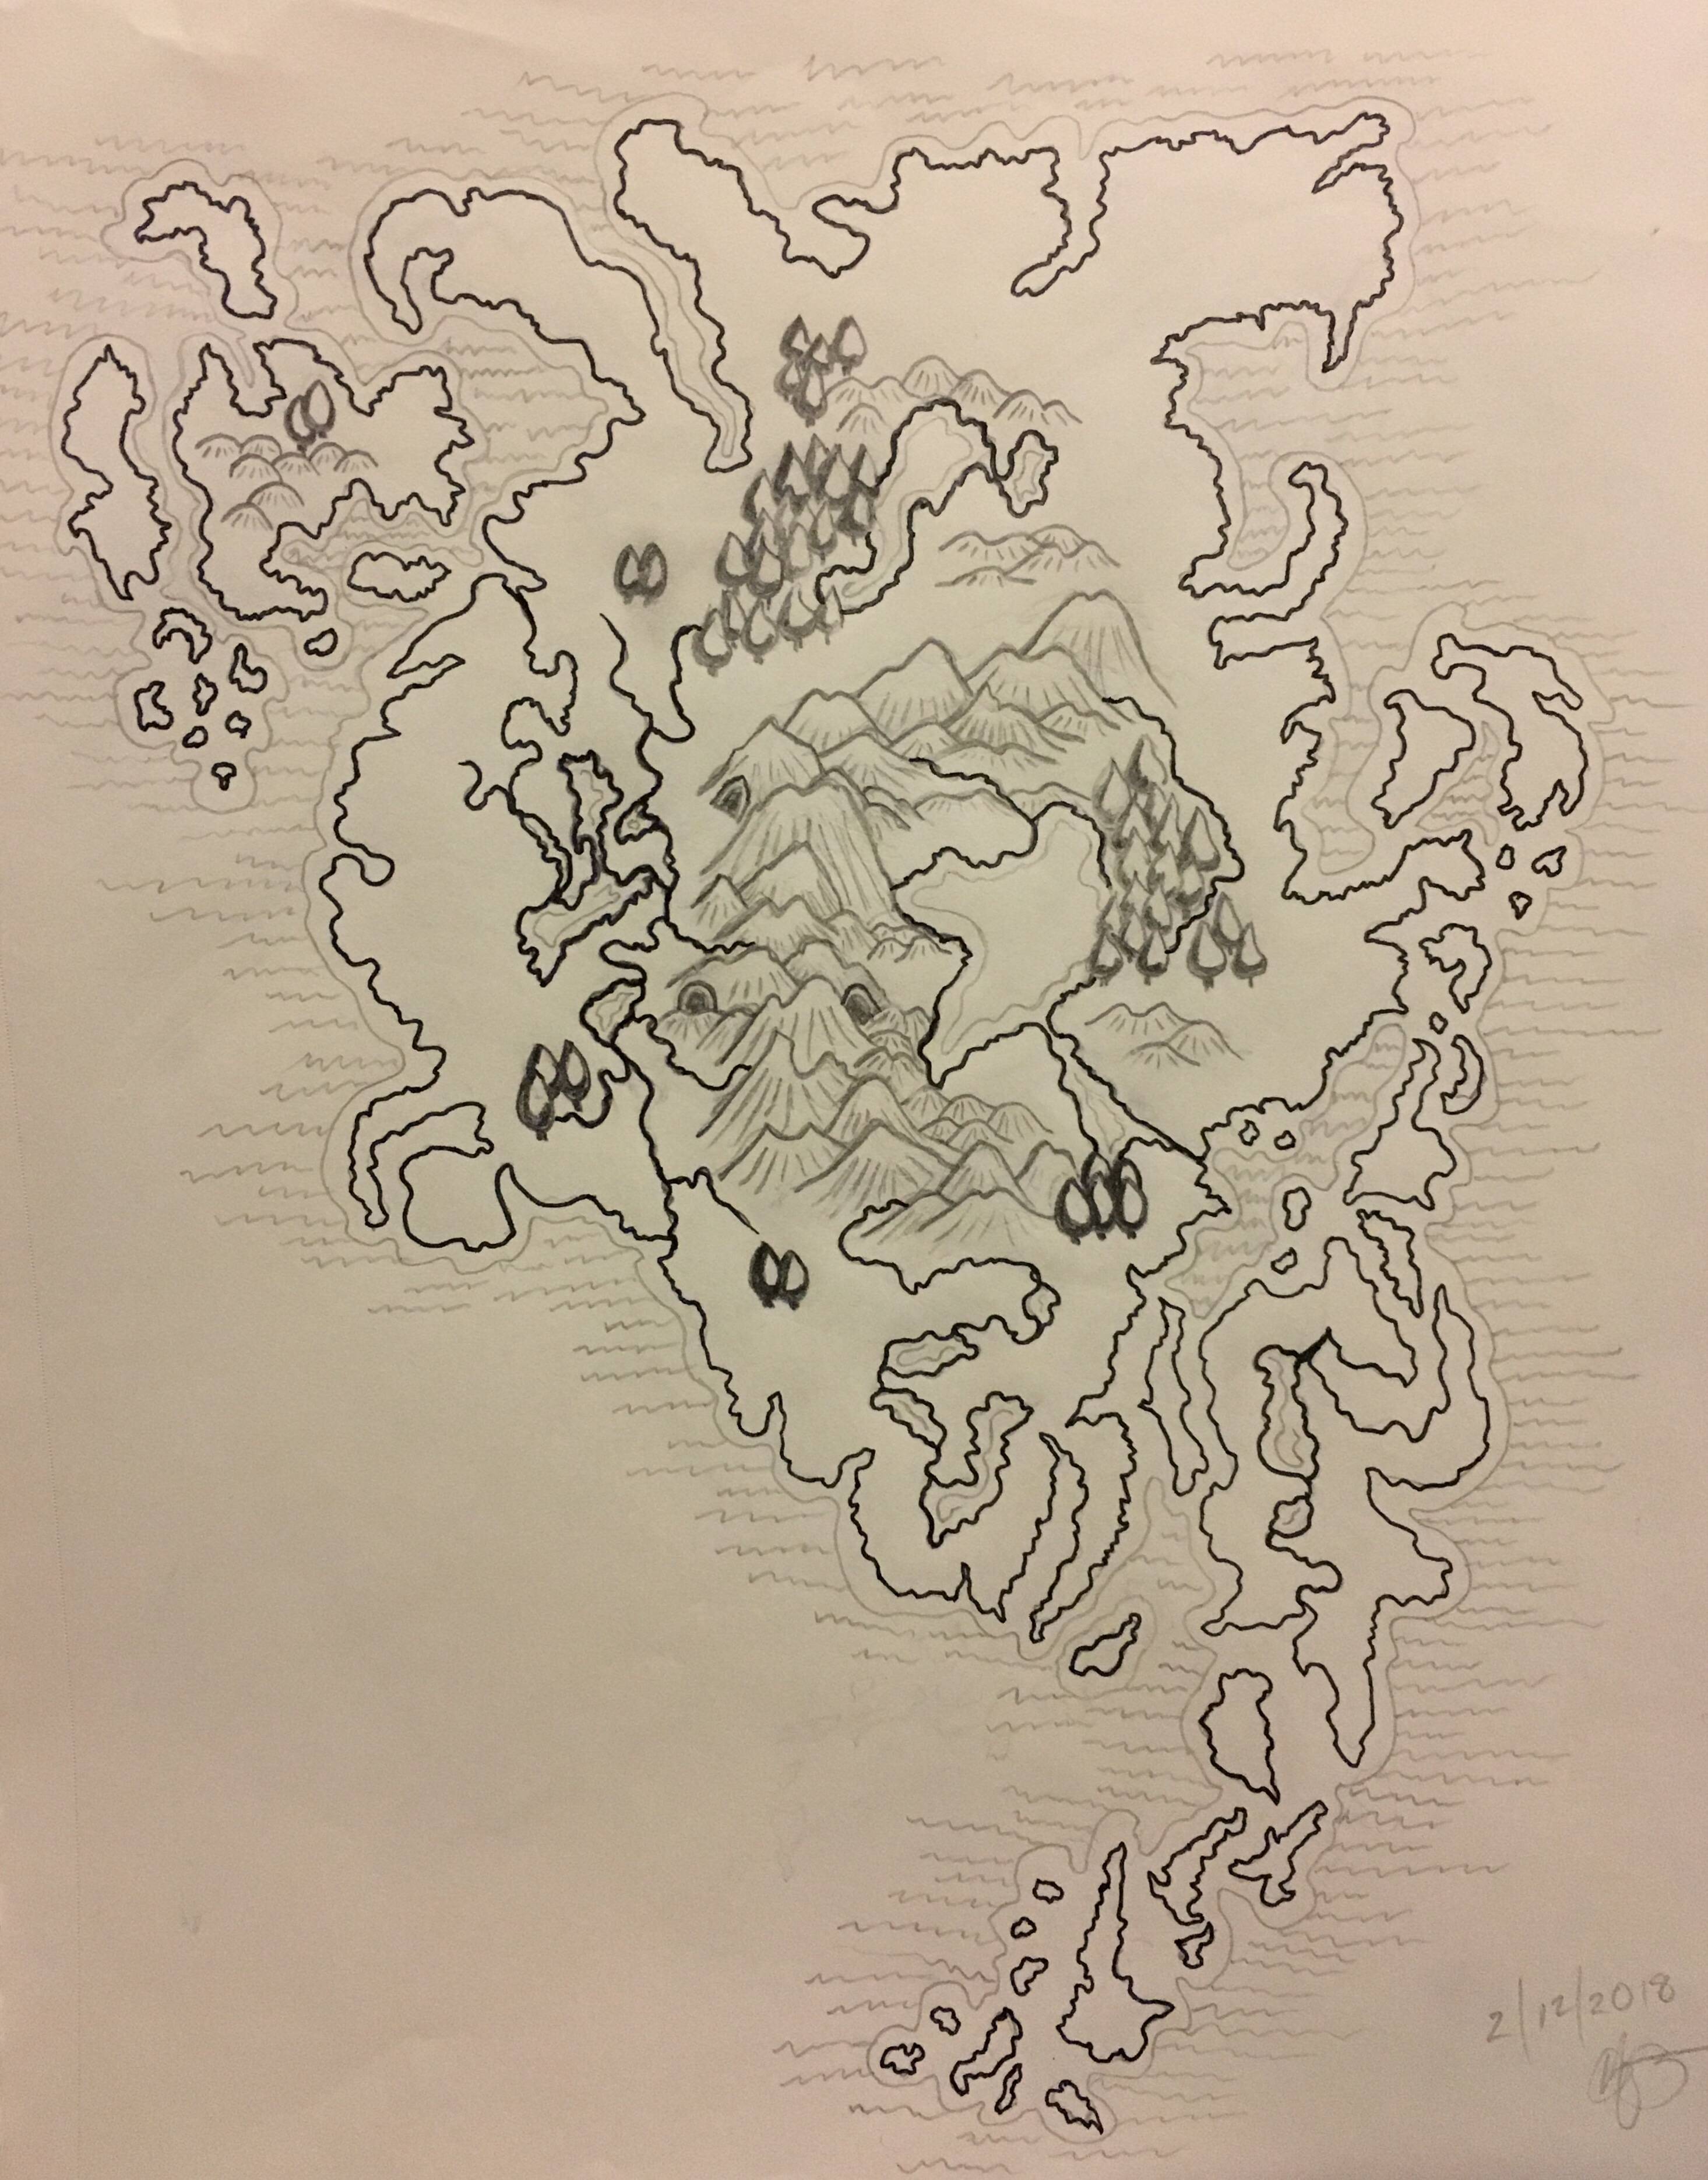 Bestosa is a map of a fantasy continent pencil sketch